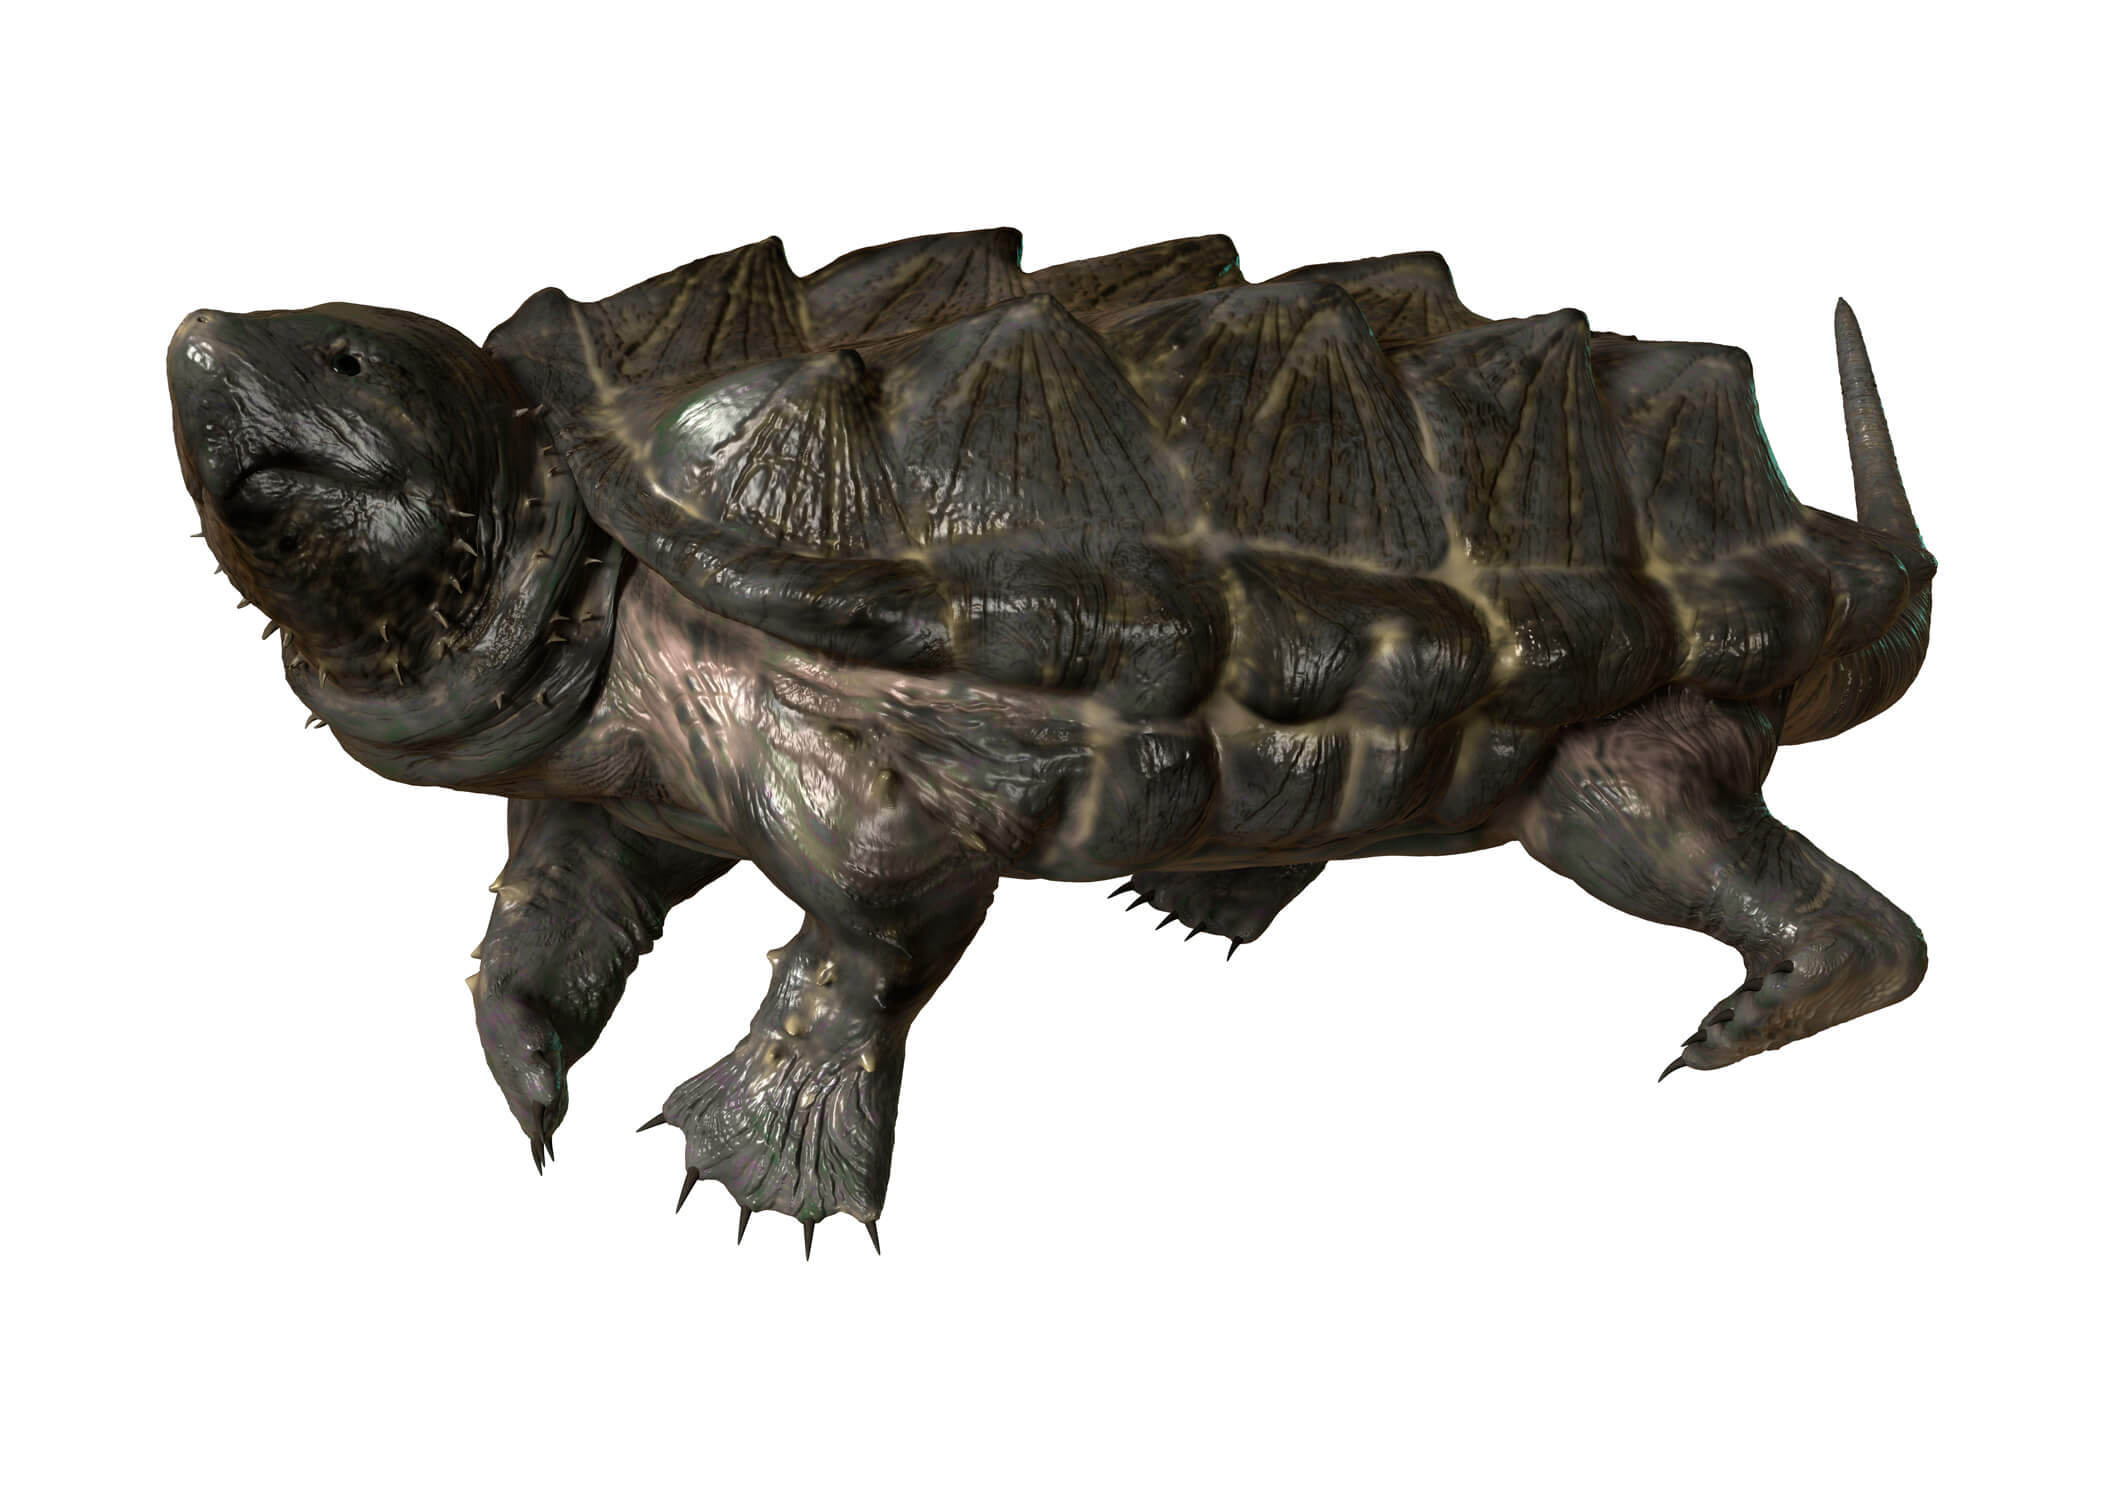 Image of alligator snapping turtle